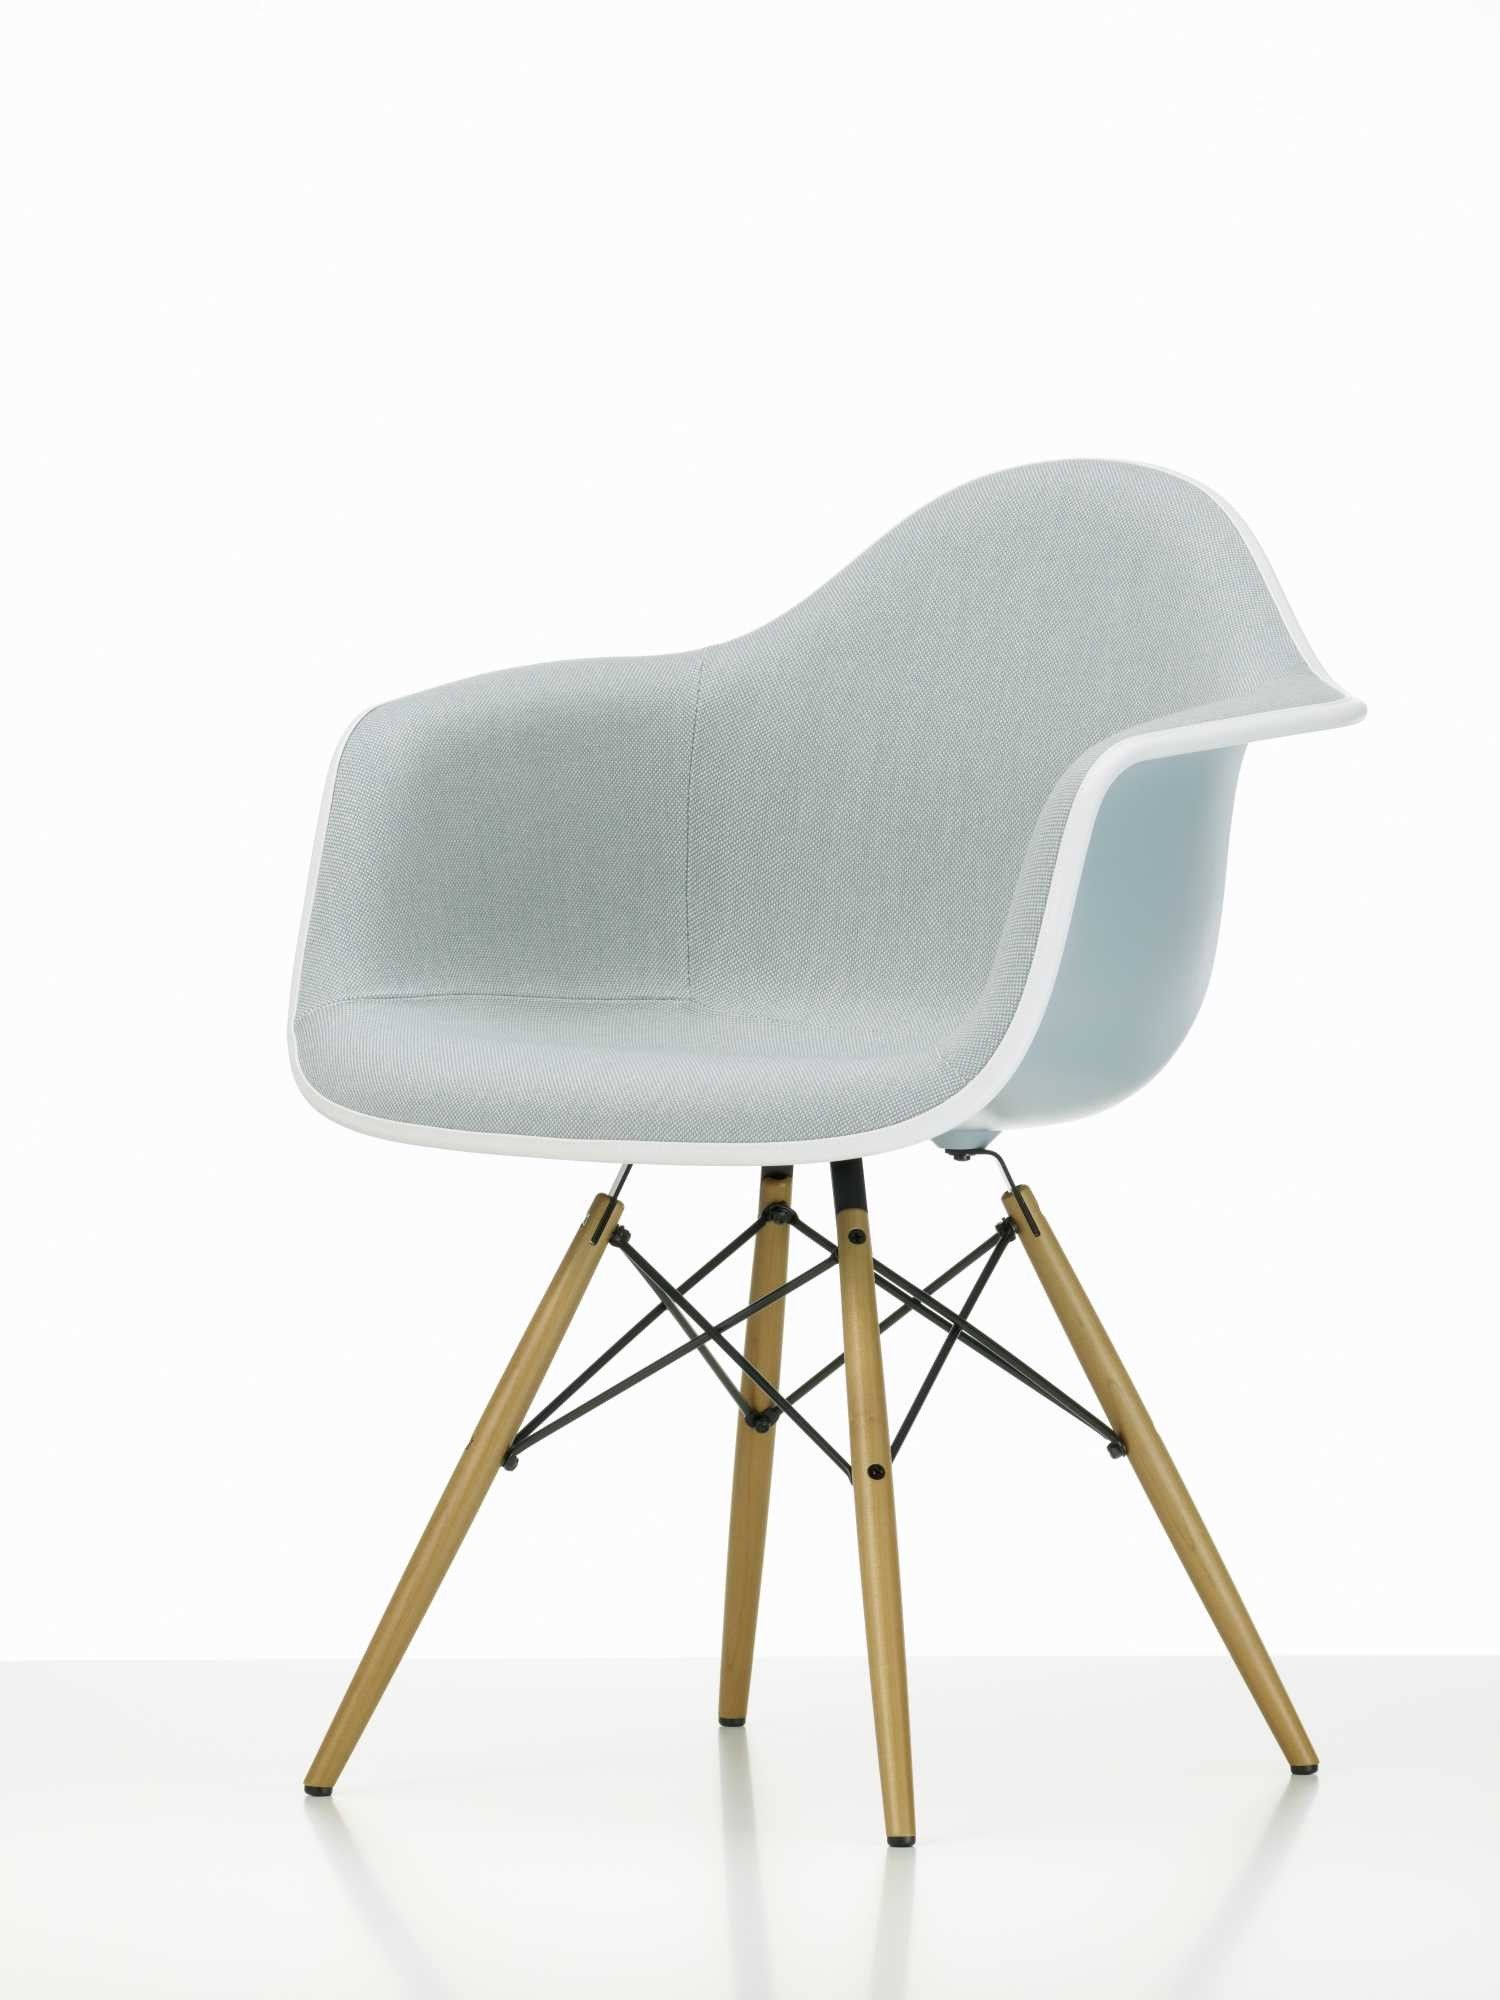 Vitra Eames Plastic Arm Chair DAW Chair Fully Upholstered